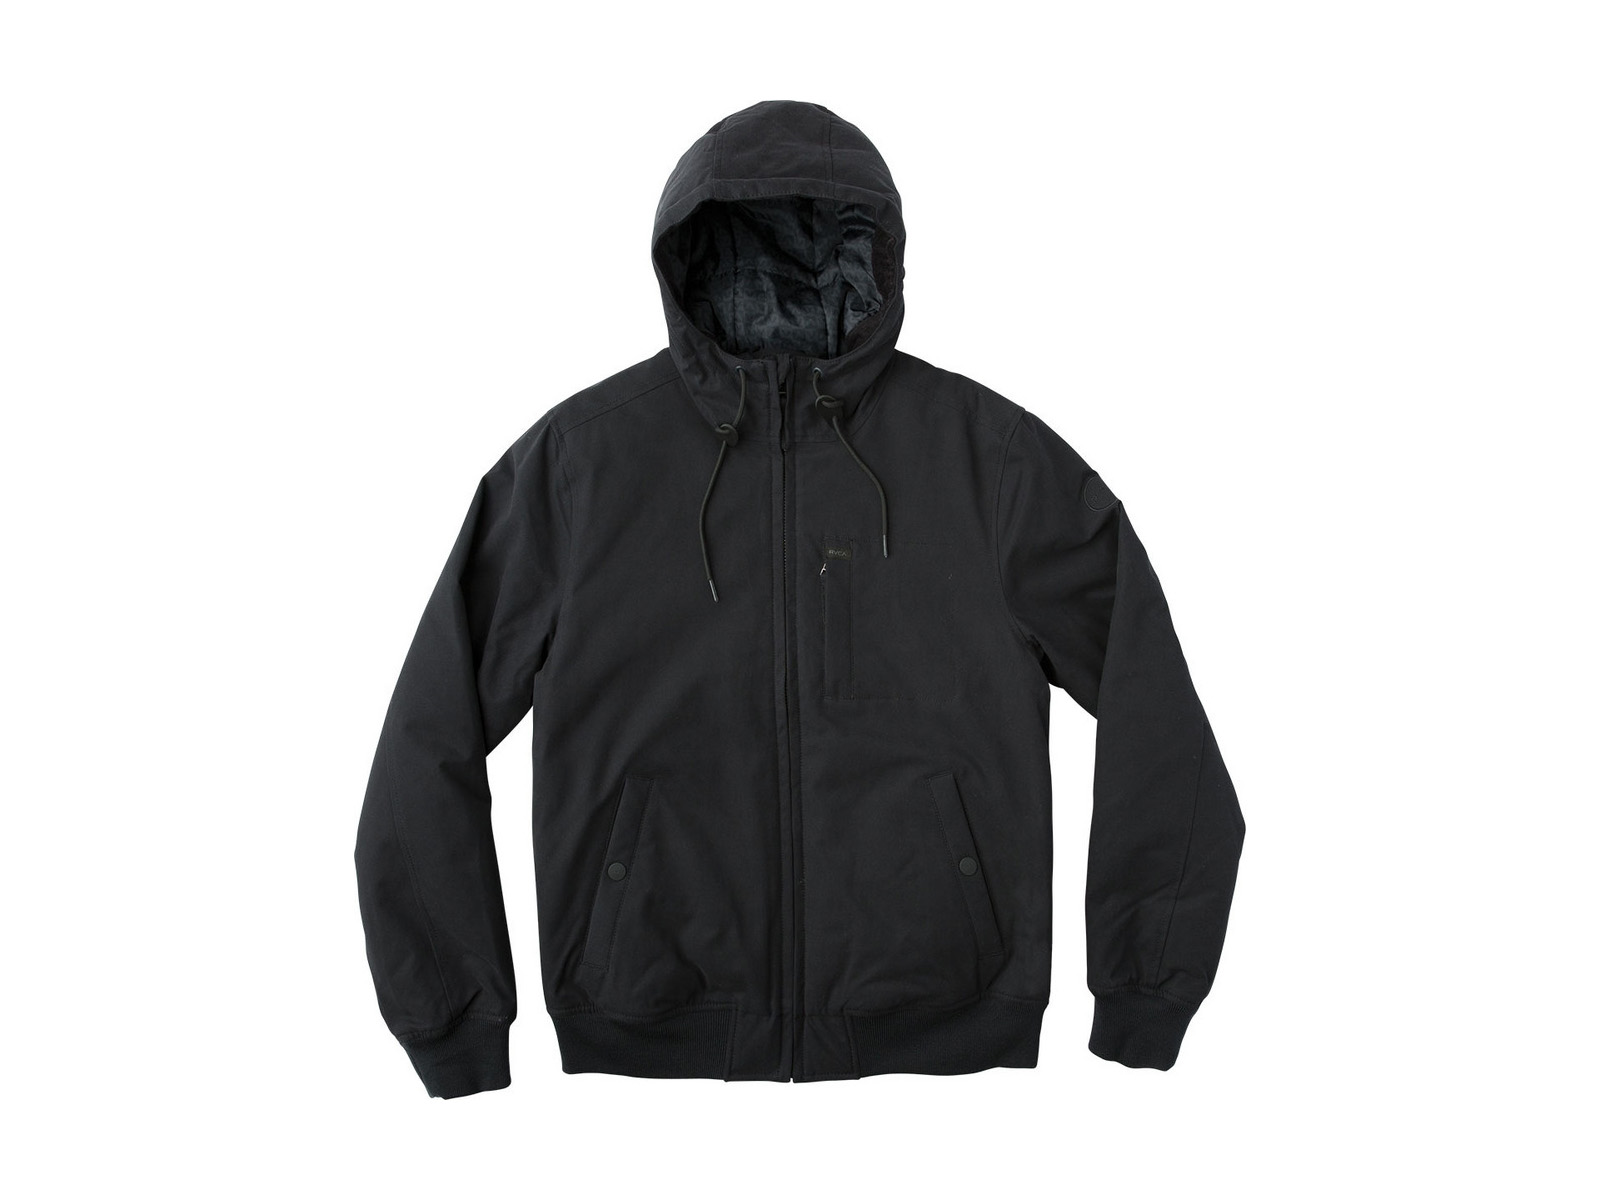 RVCA – Hooded Bomber